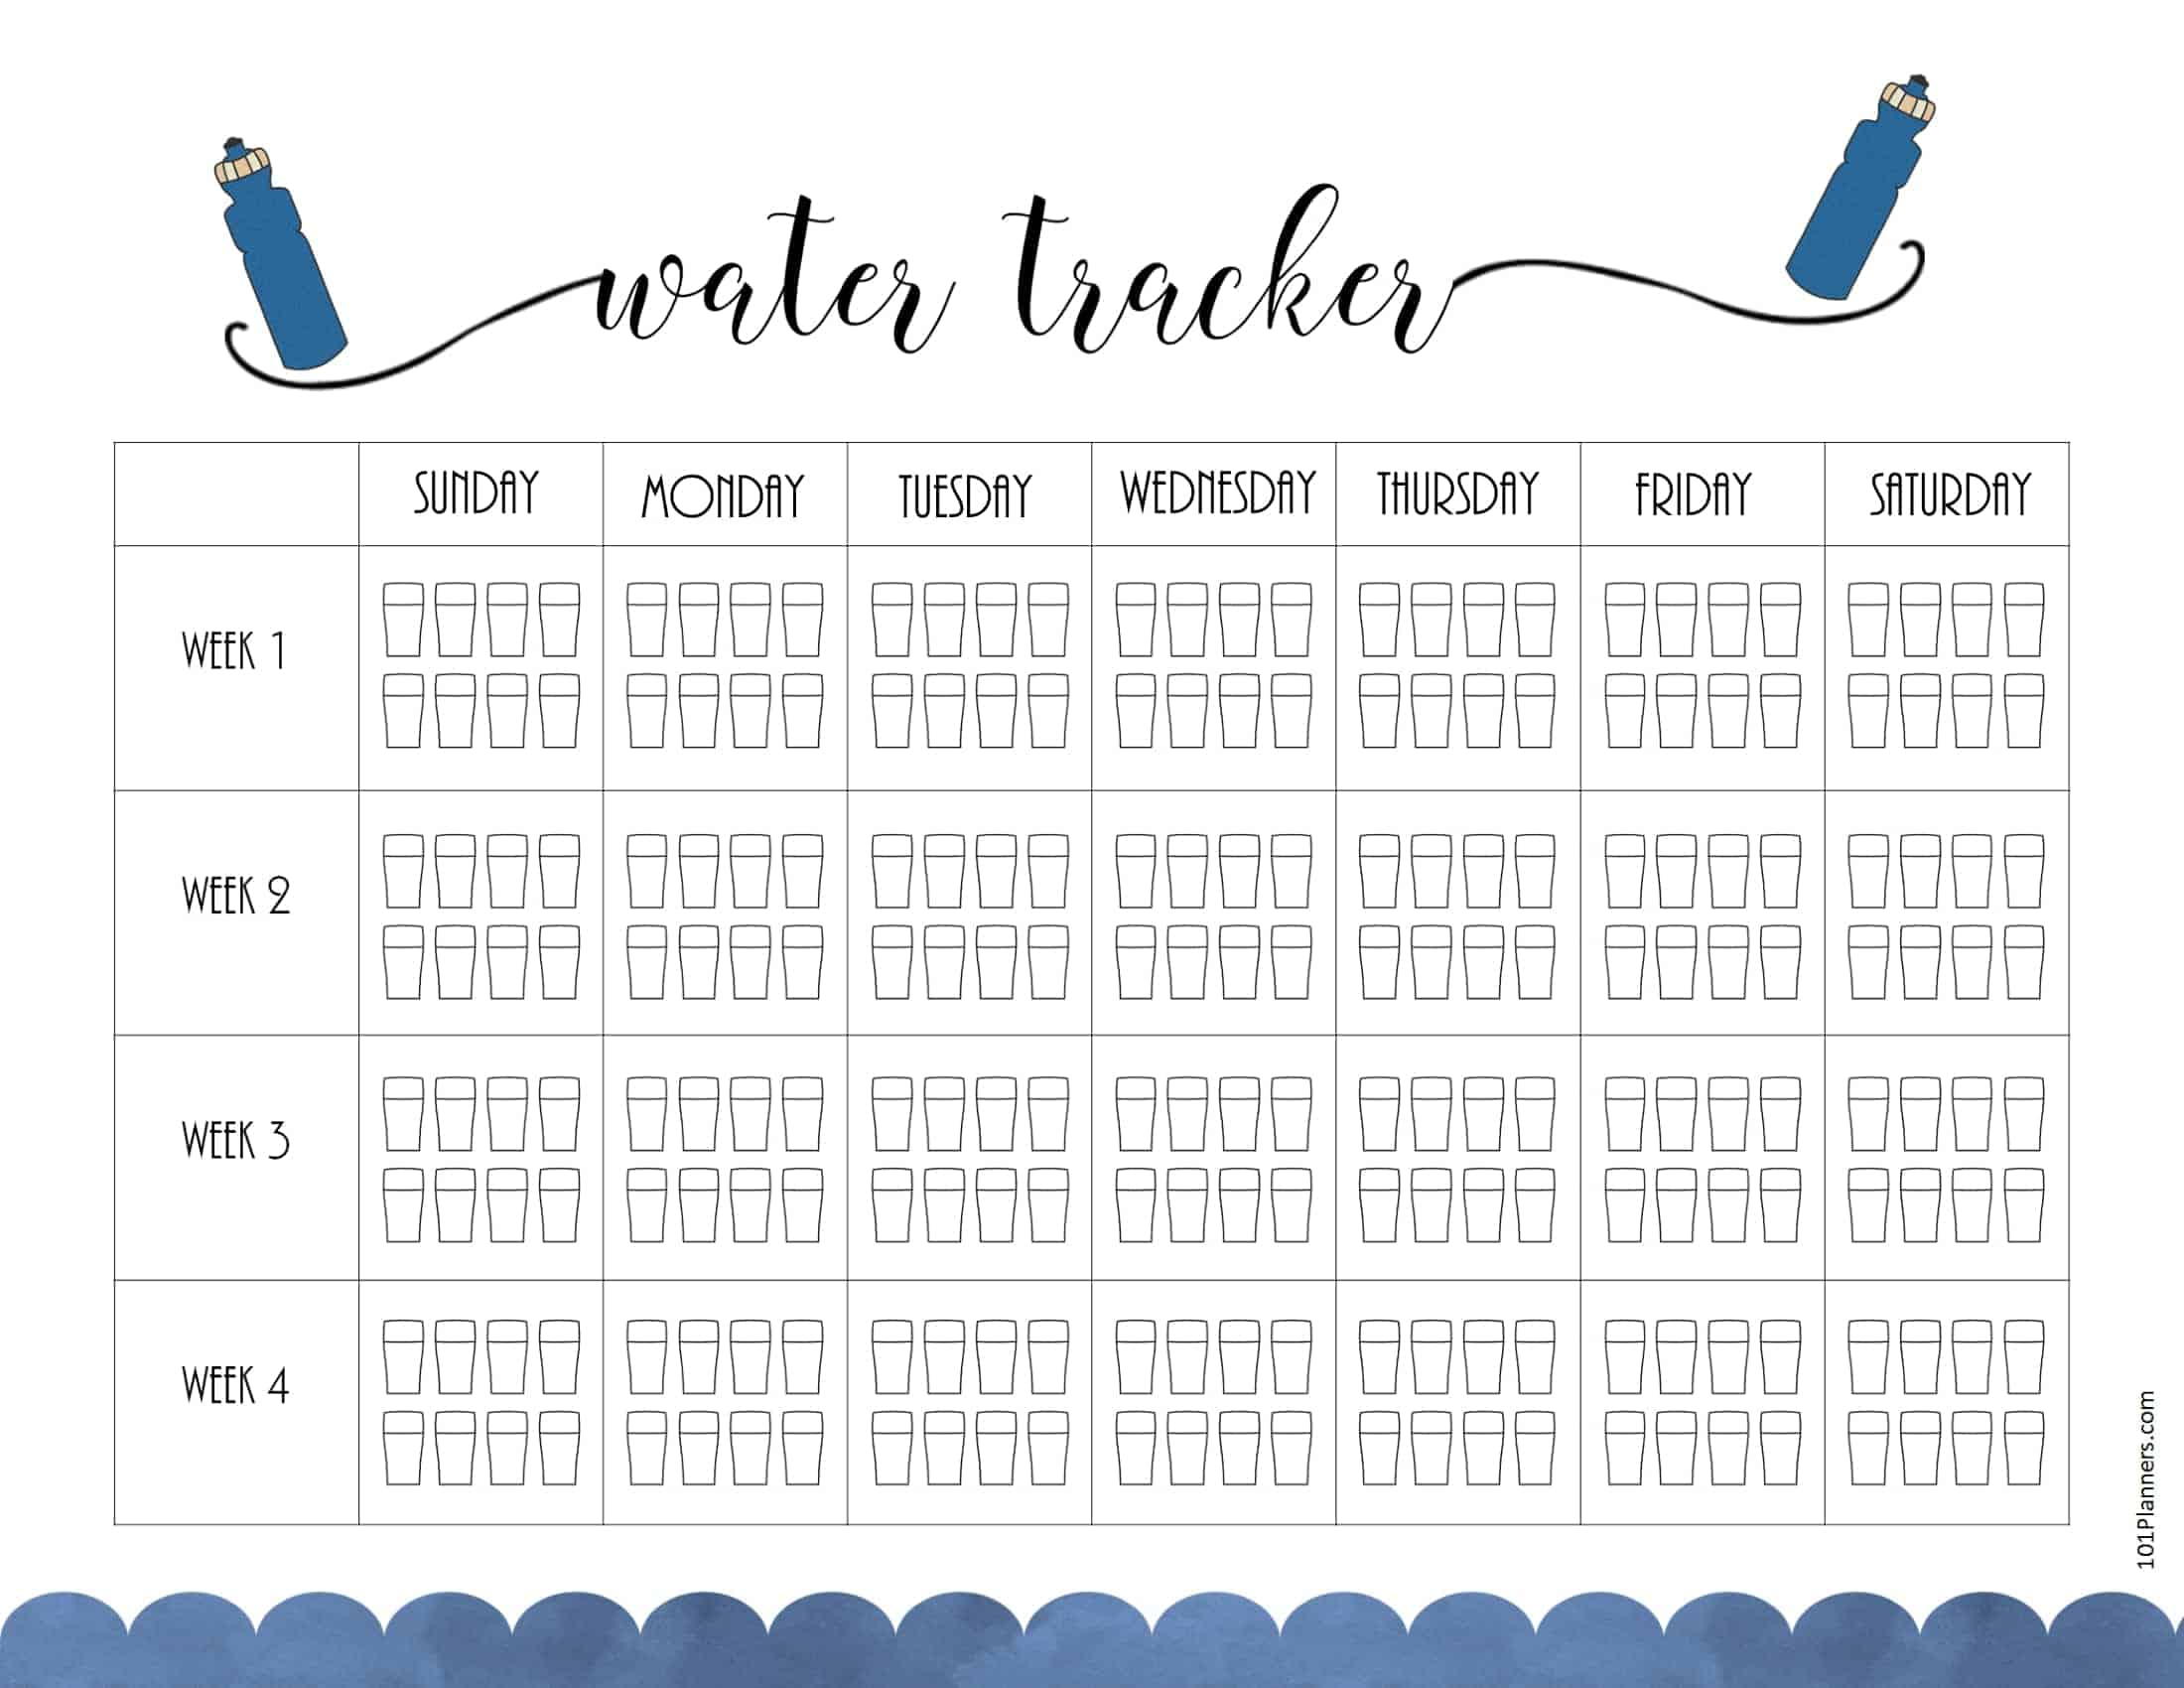 Free Water Tracker Printable